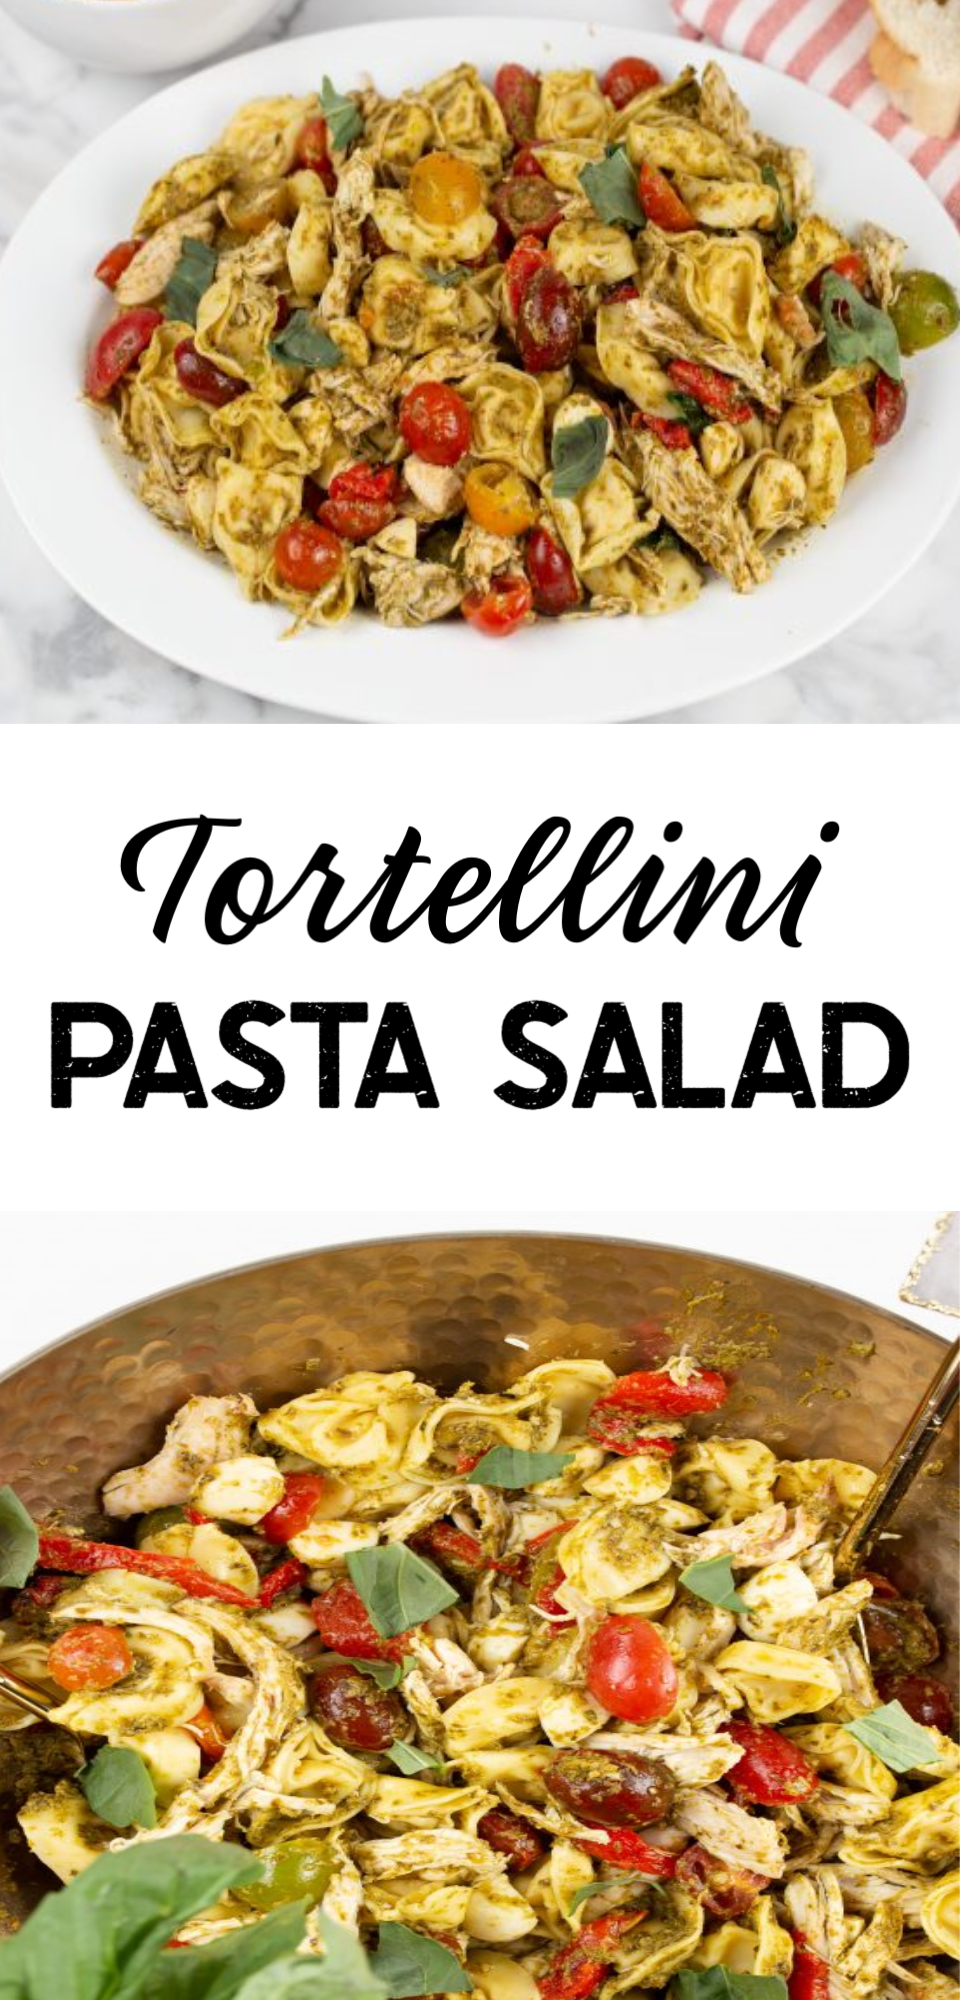 Tortellini Pasta Salad is a delicious dish that is simple to make. The fresh veggies, chicken and creamy Salad dressing are amazing combinations that make up this light and mouth-watering salad. via @simplysidedishes89